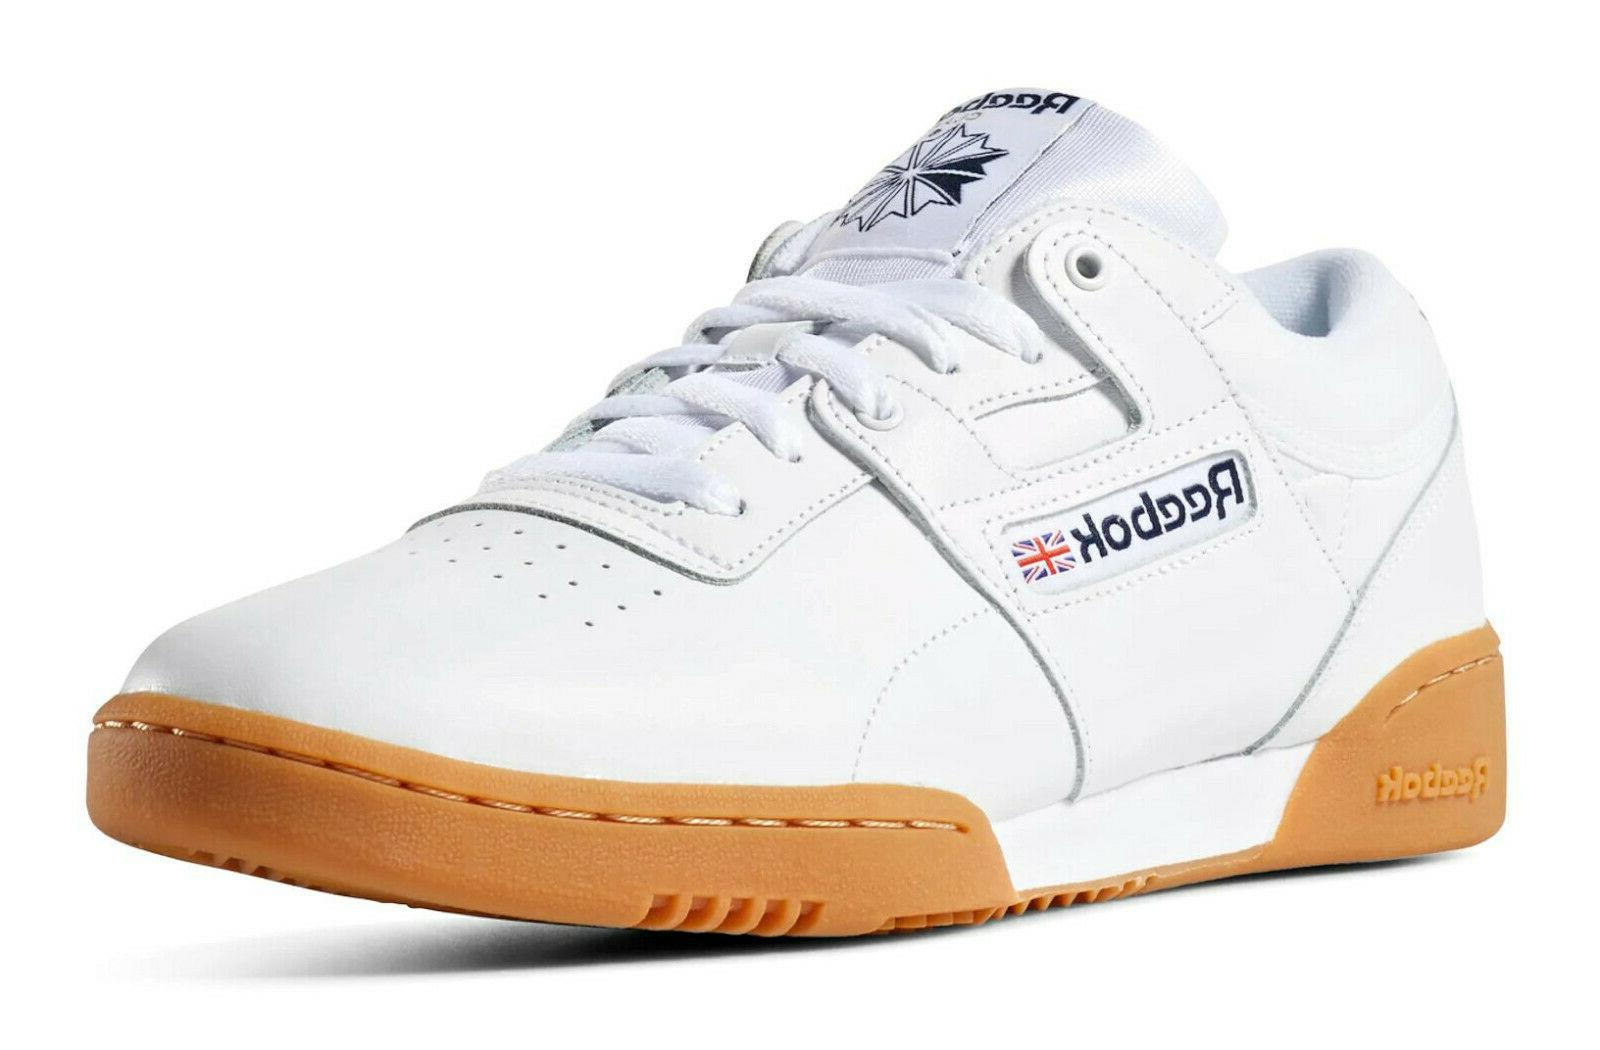 Reebok Workout Low White Gum Leather Mens Running Sneakers T